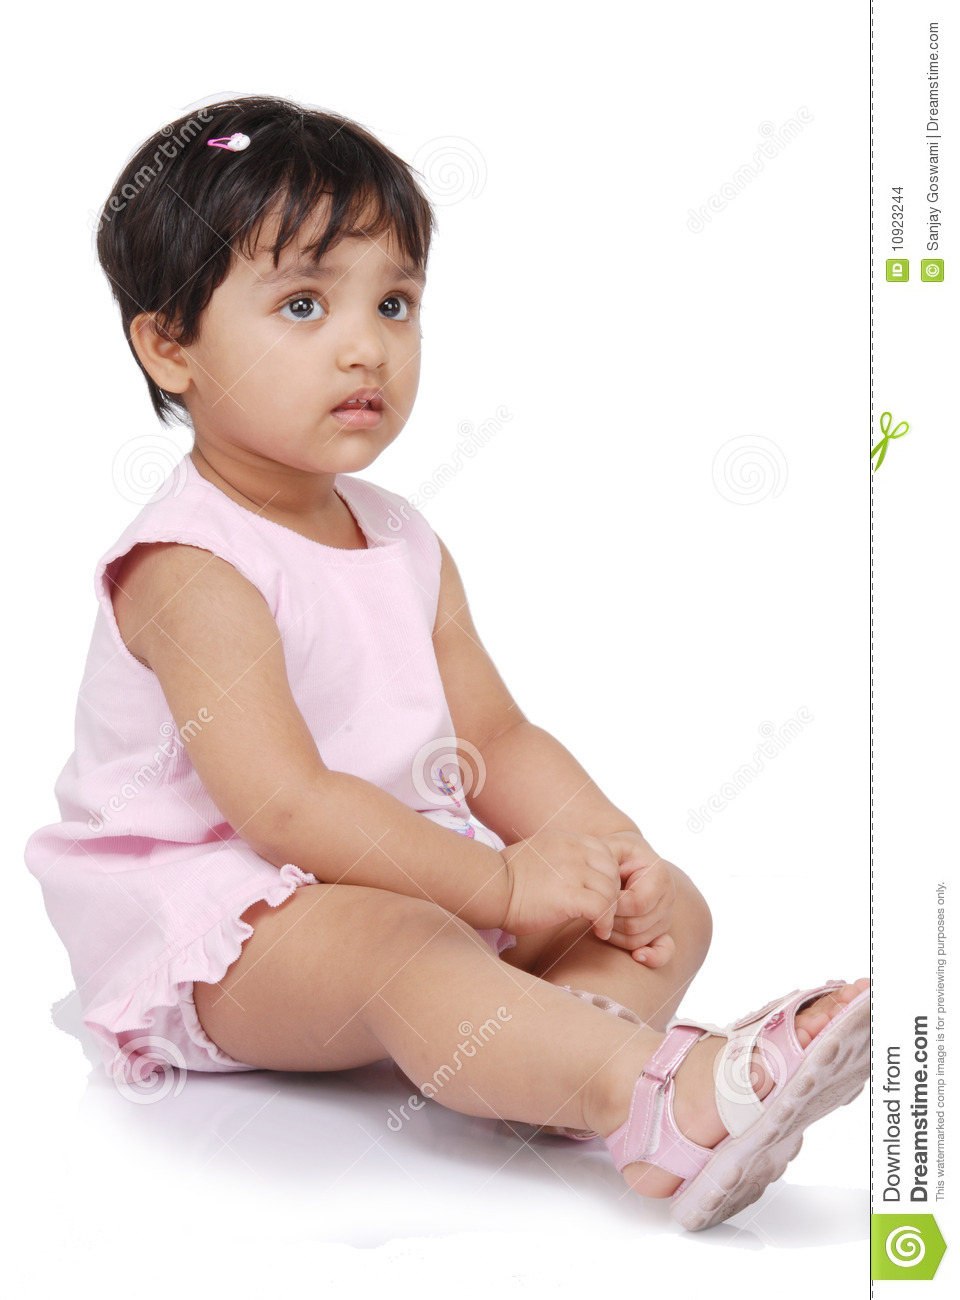 What can a child 3 years old